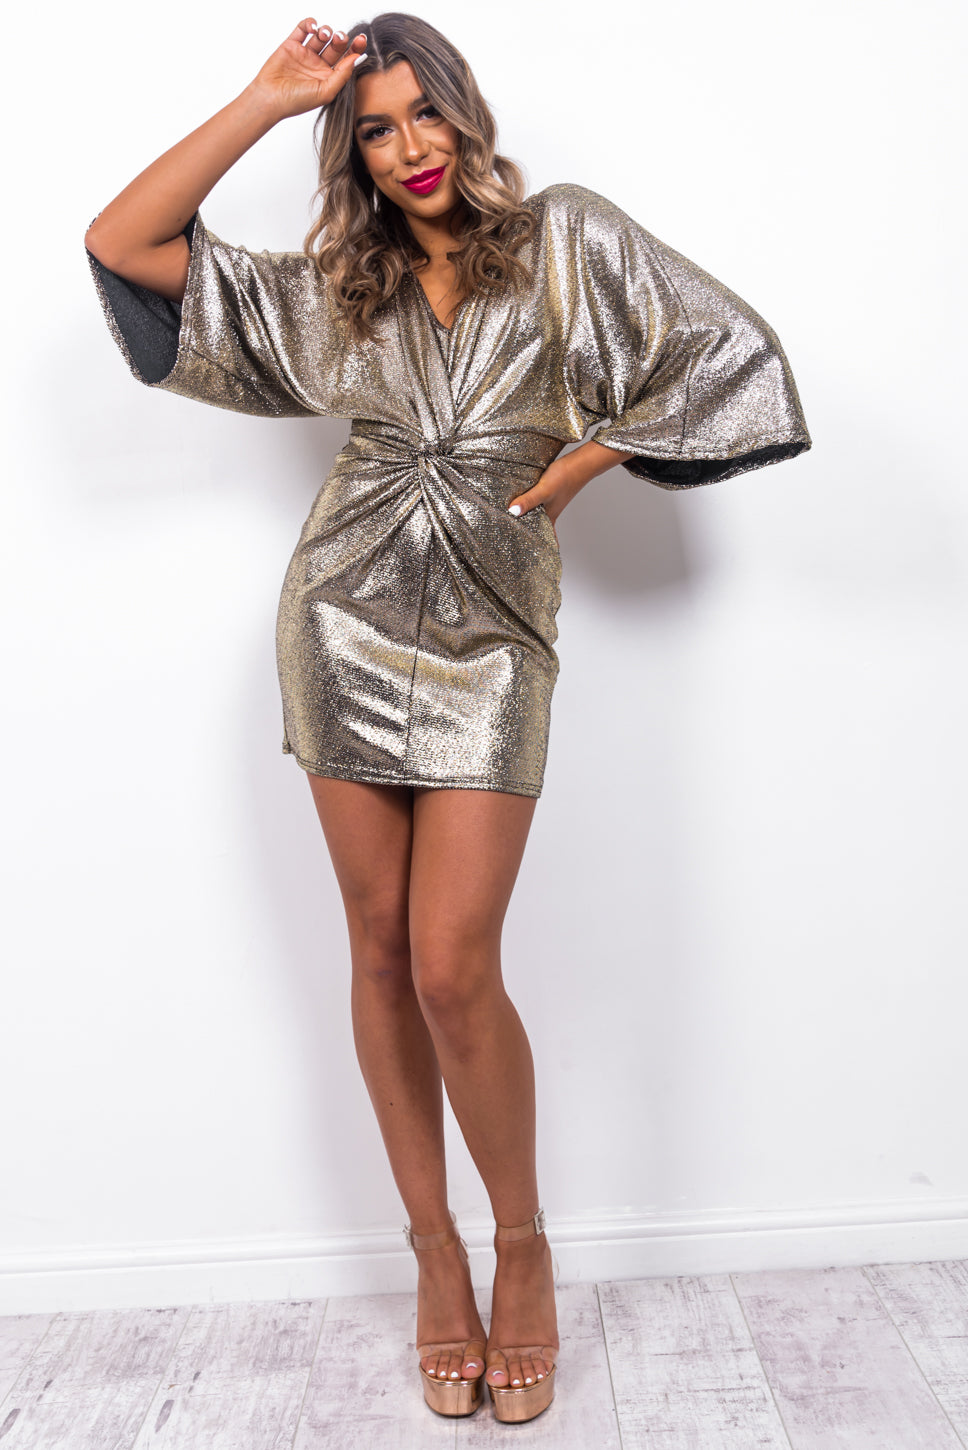 Here For A Good Shine - Mini Dress In CHAMPAGNE